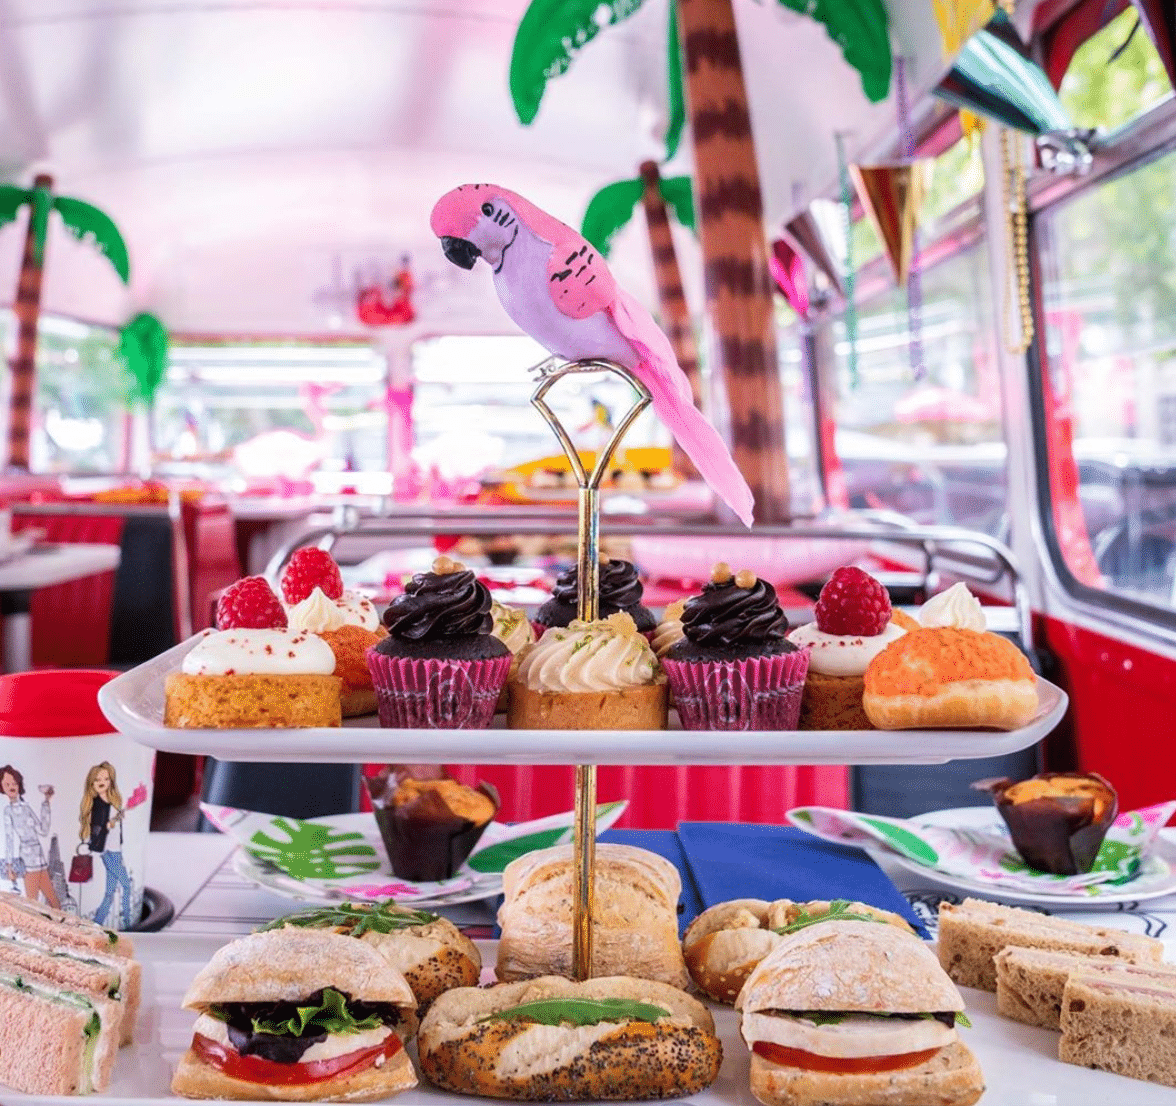 B Bakery Bus Tour Instagrammable Cafe